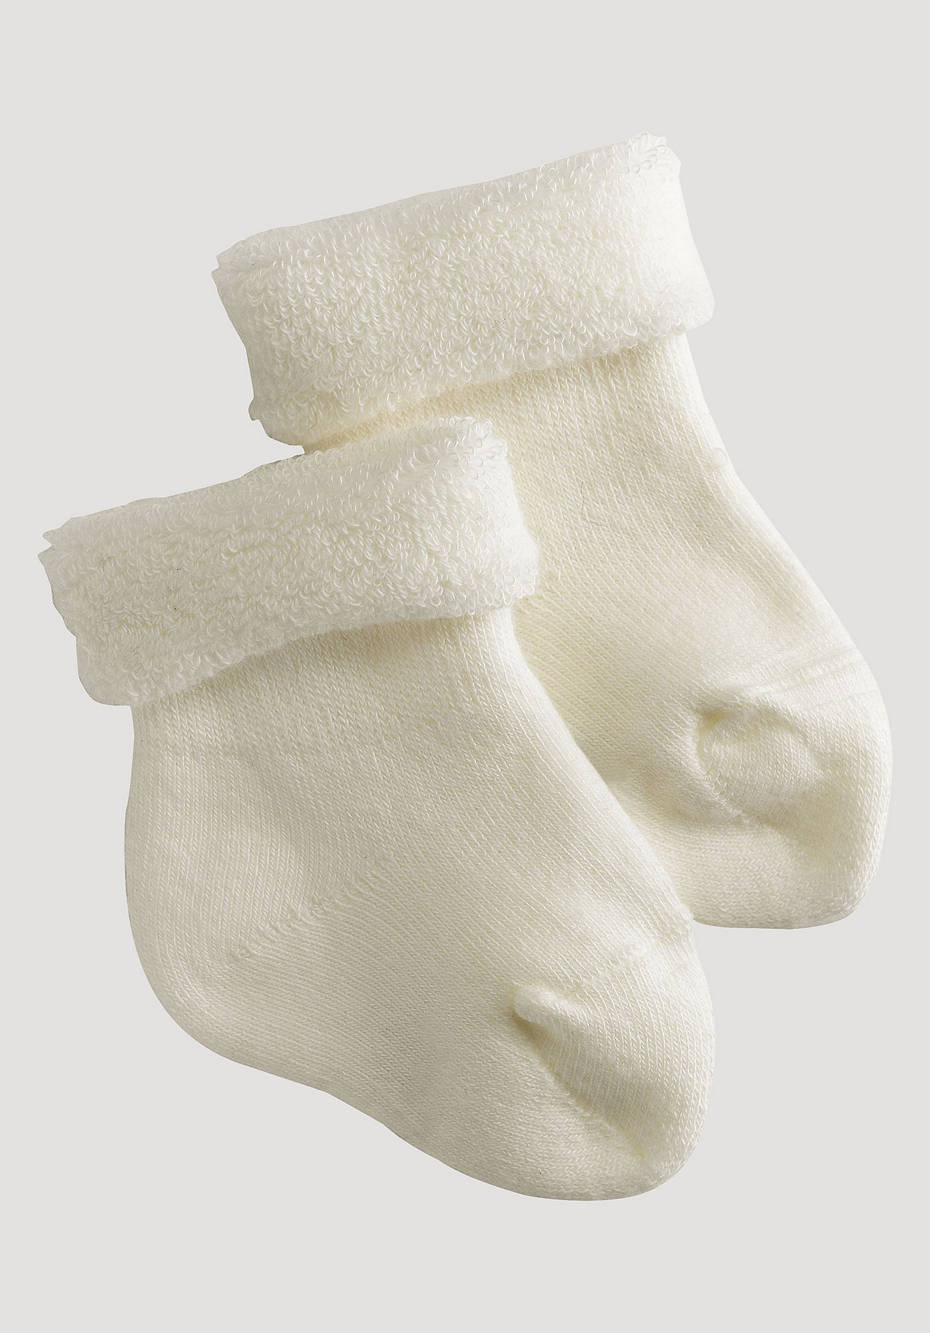 Terrycloth socks in a 2-pack made of organic cotton